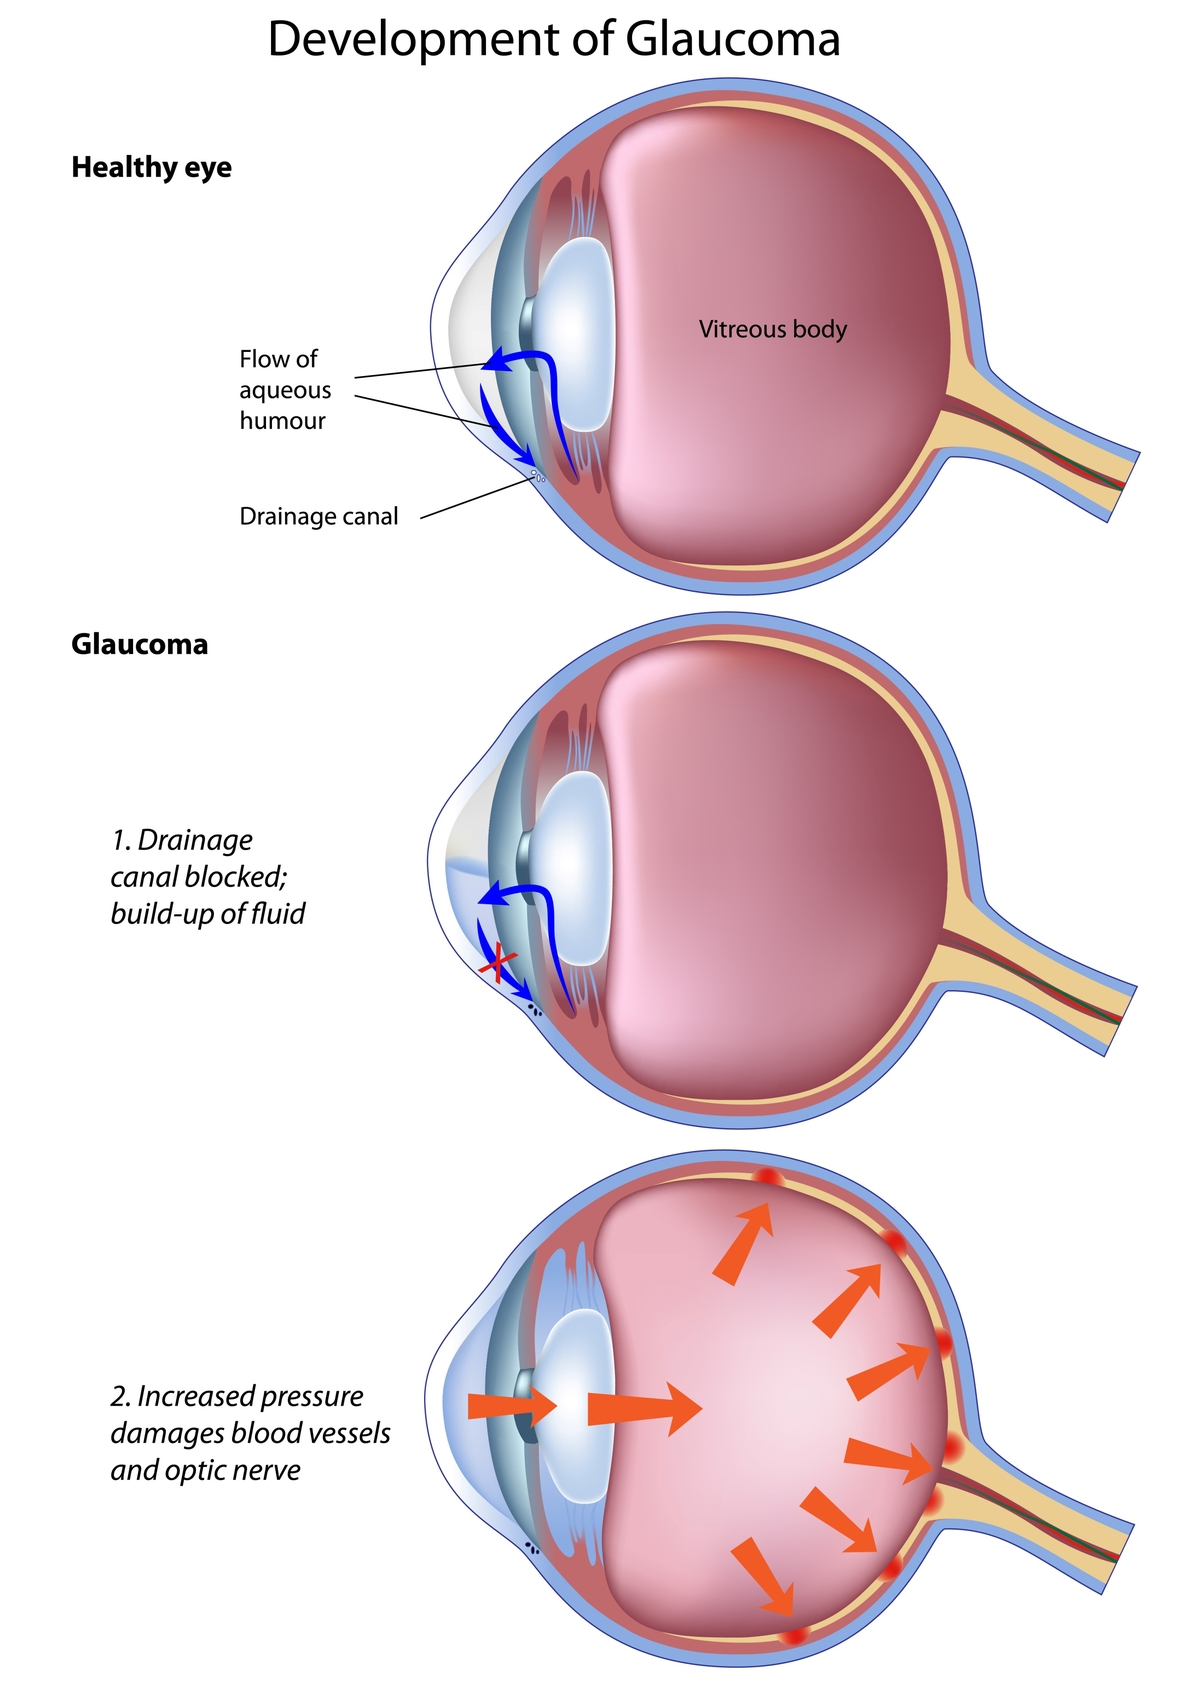 How is glaucoma created?